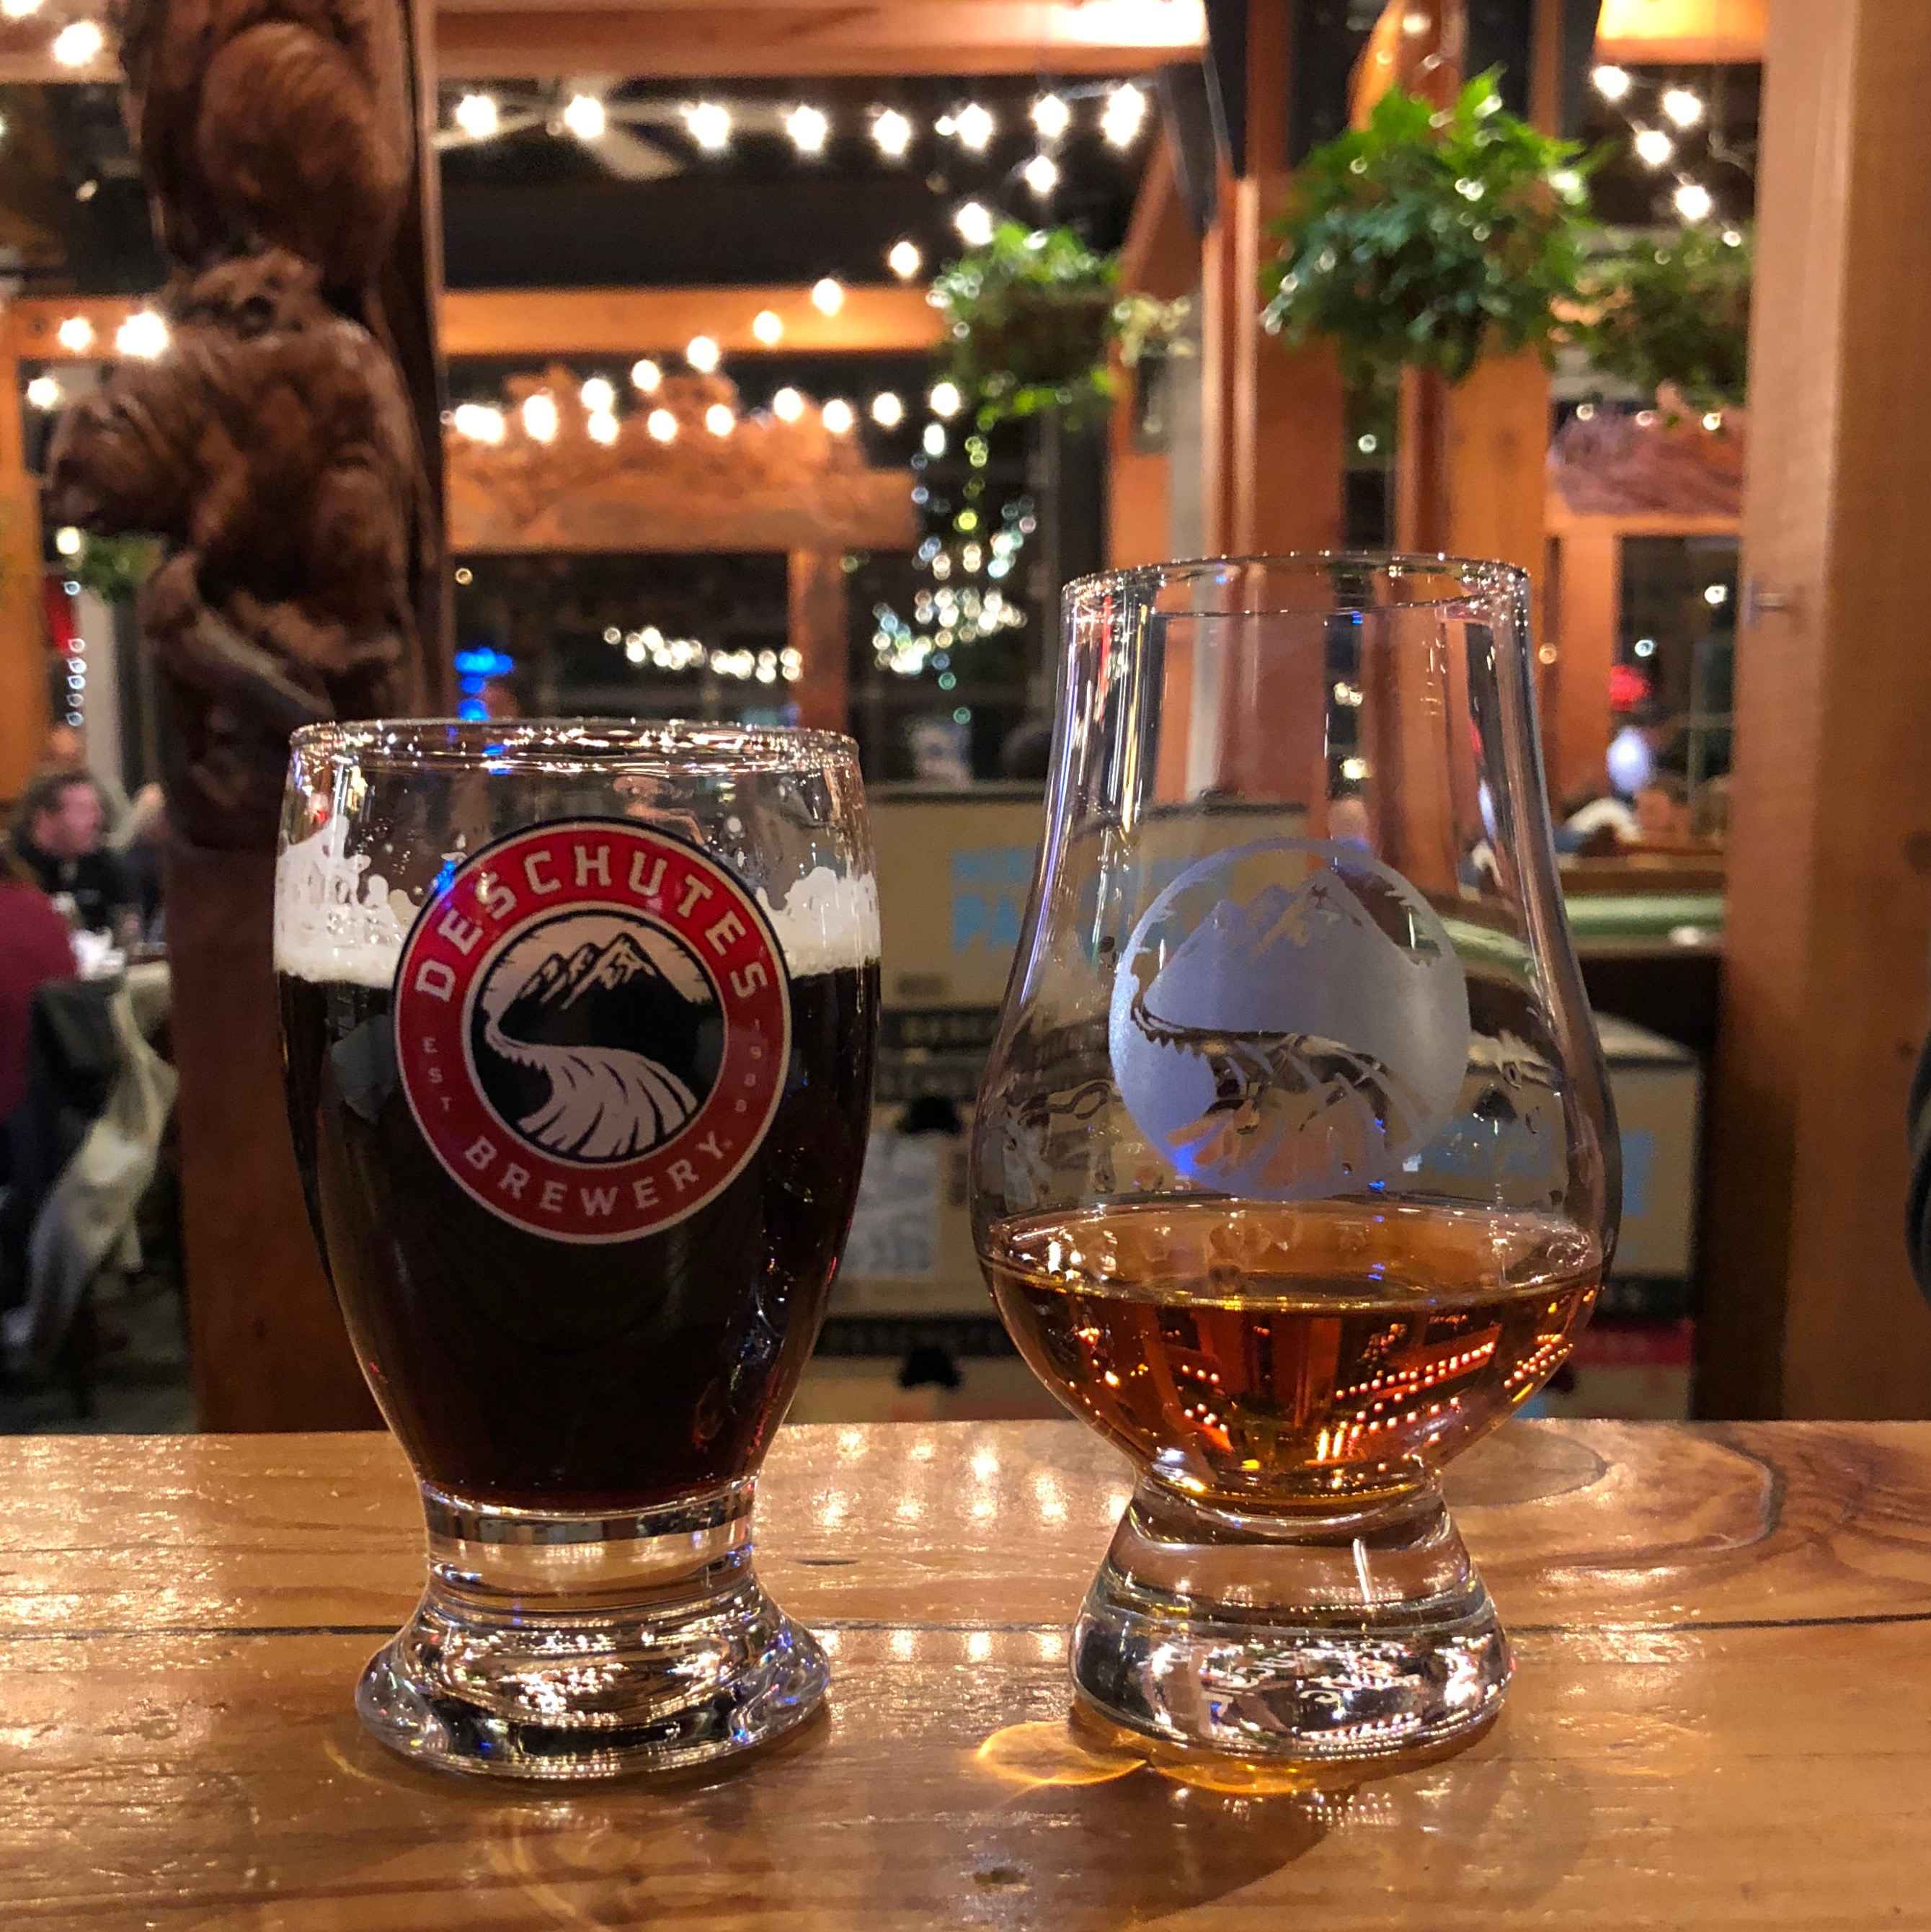 Deschutes Brewery and Bendistillery released the second bottling of its Black Butte Whiskey in early December. This whiskey is available by the dram at Deschutes in the Pearl District.